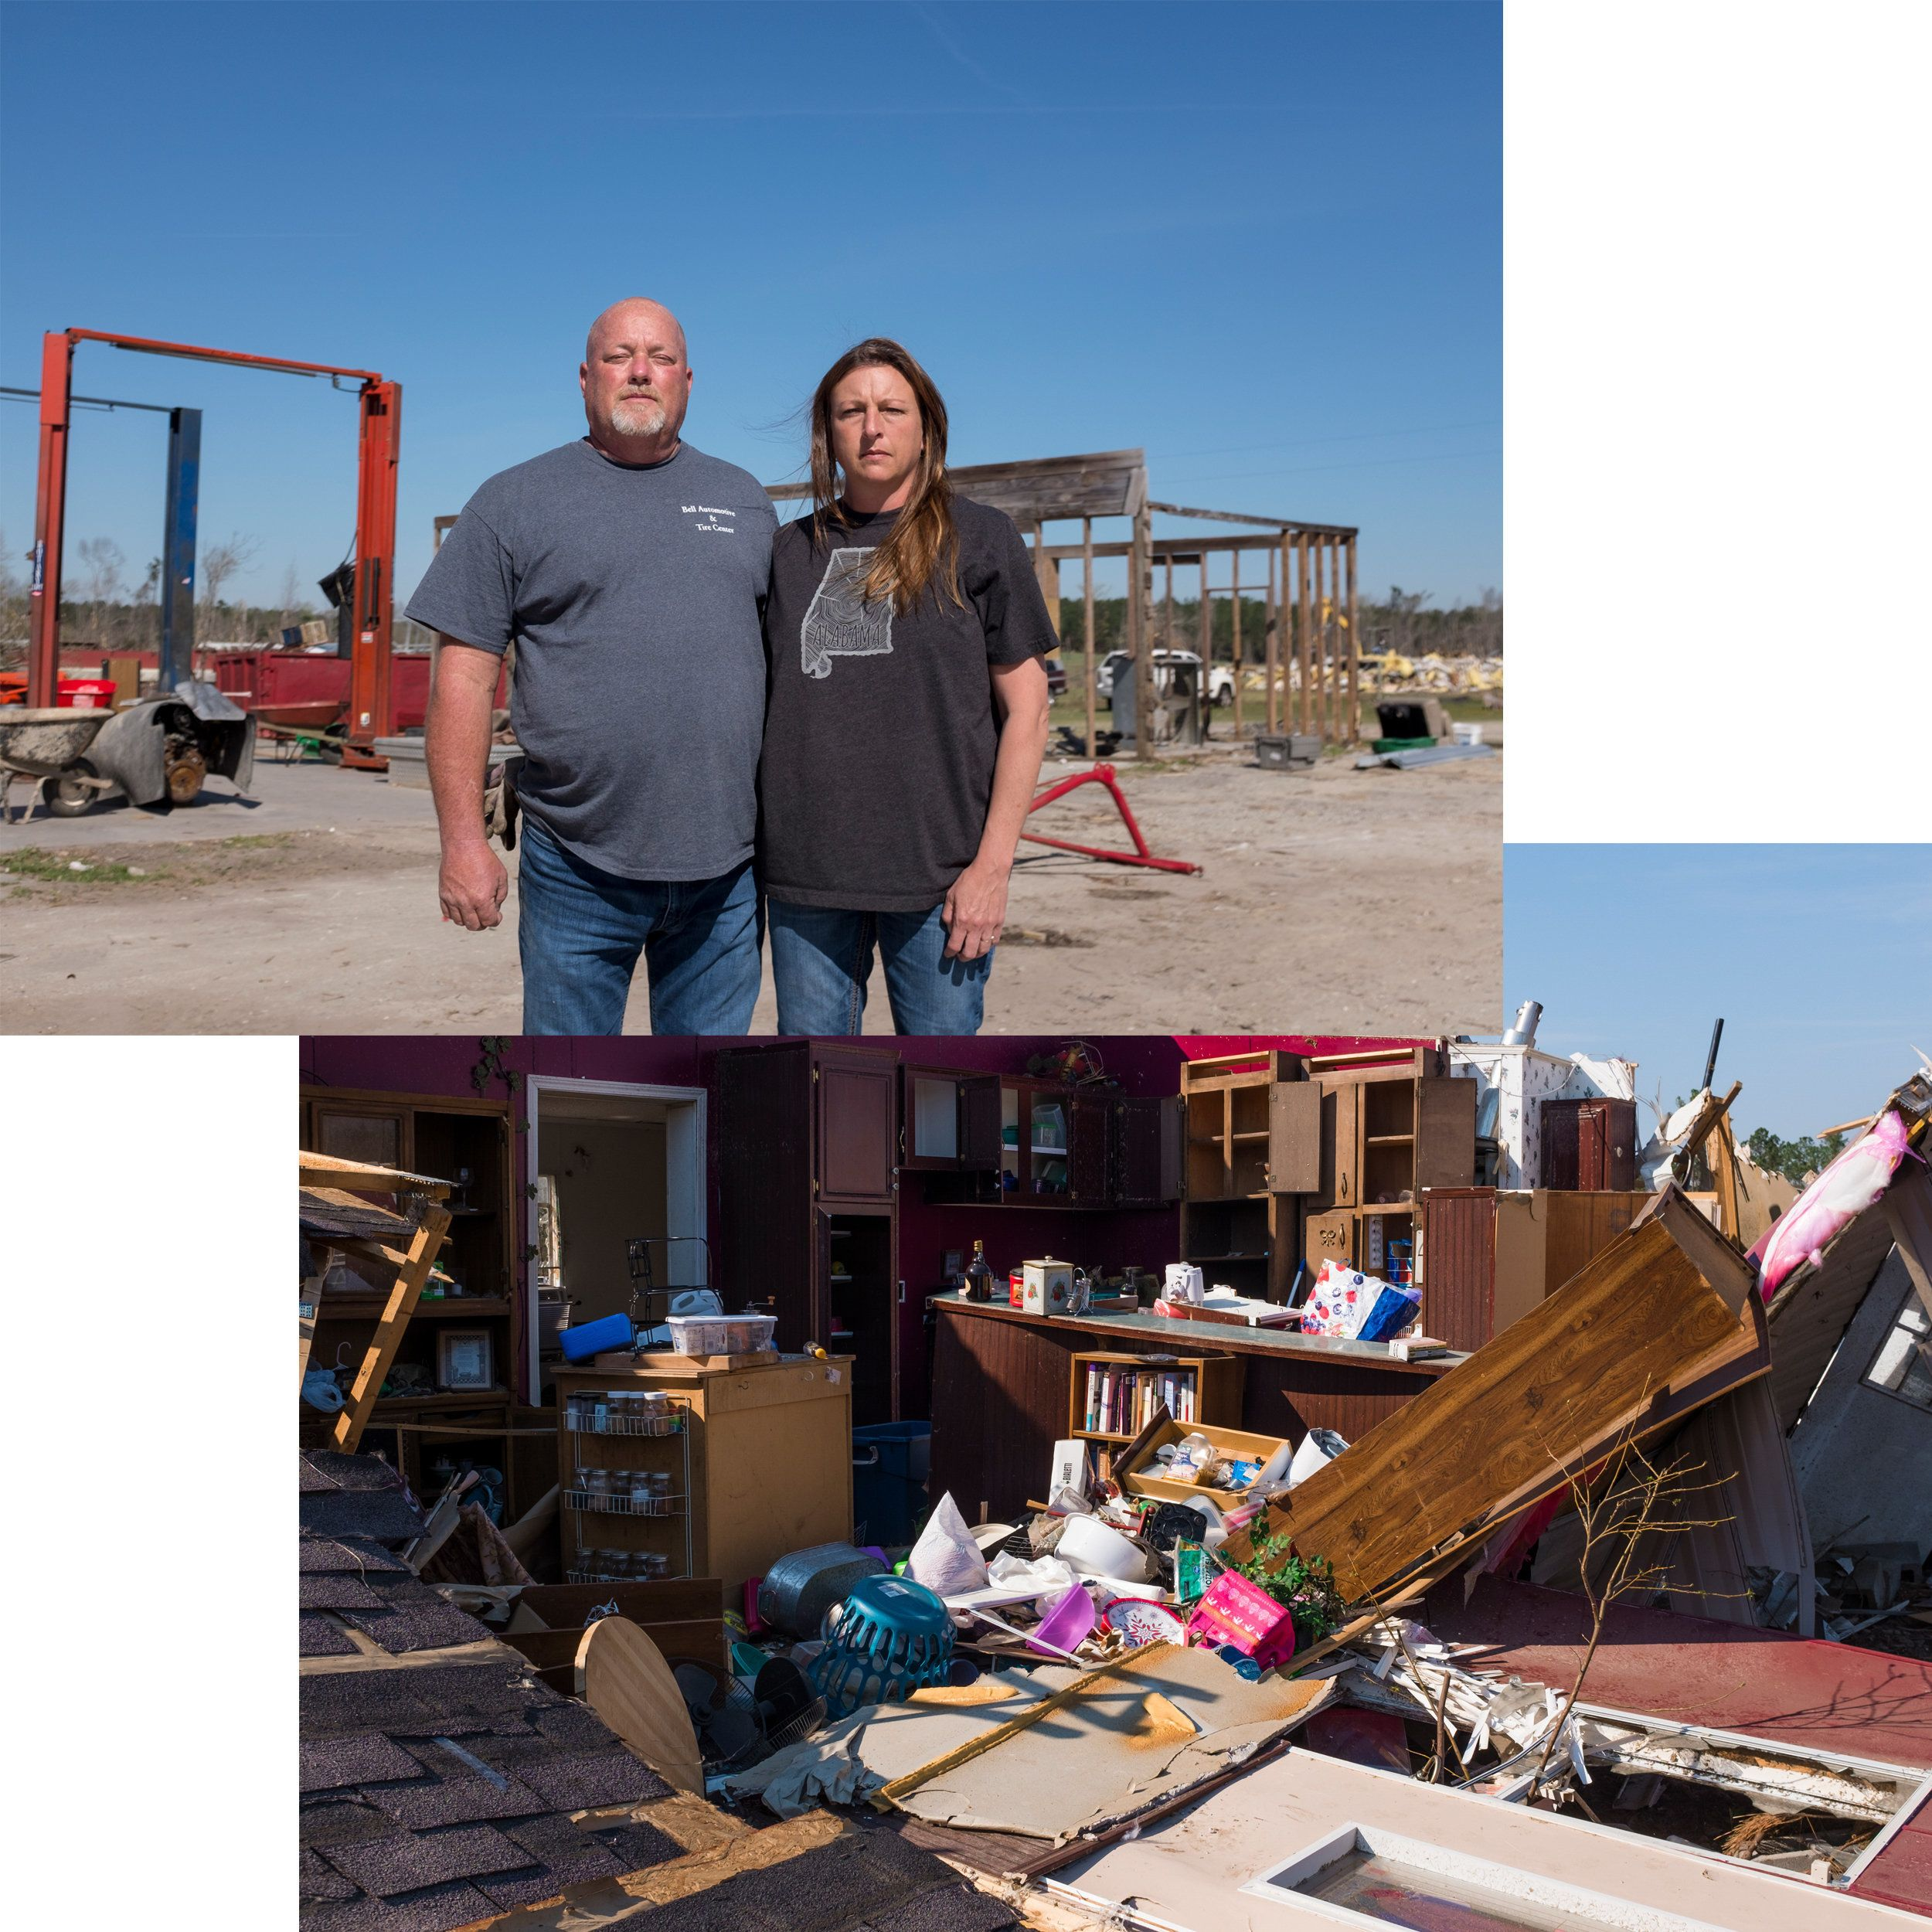 (Top) Troy Bell and his wife, Melanie, stand in front of what was their automotive mechanic shop. (Bottom) Various belongings